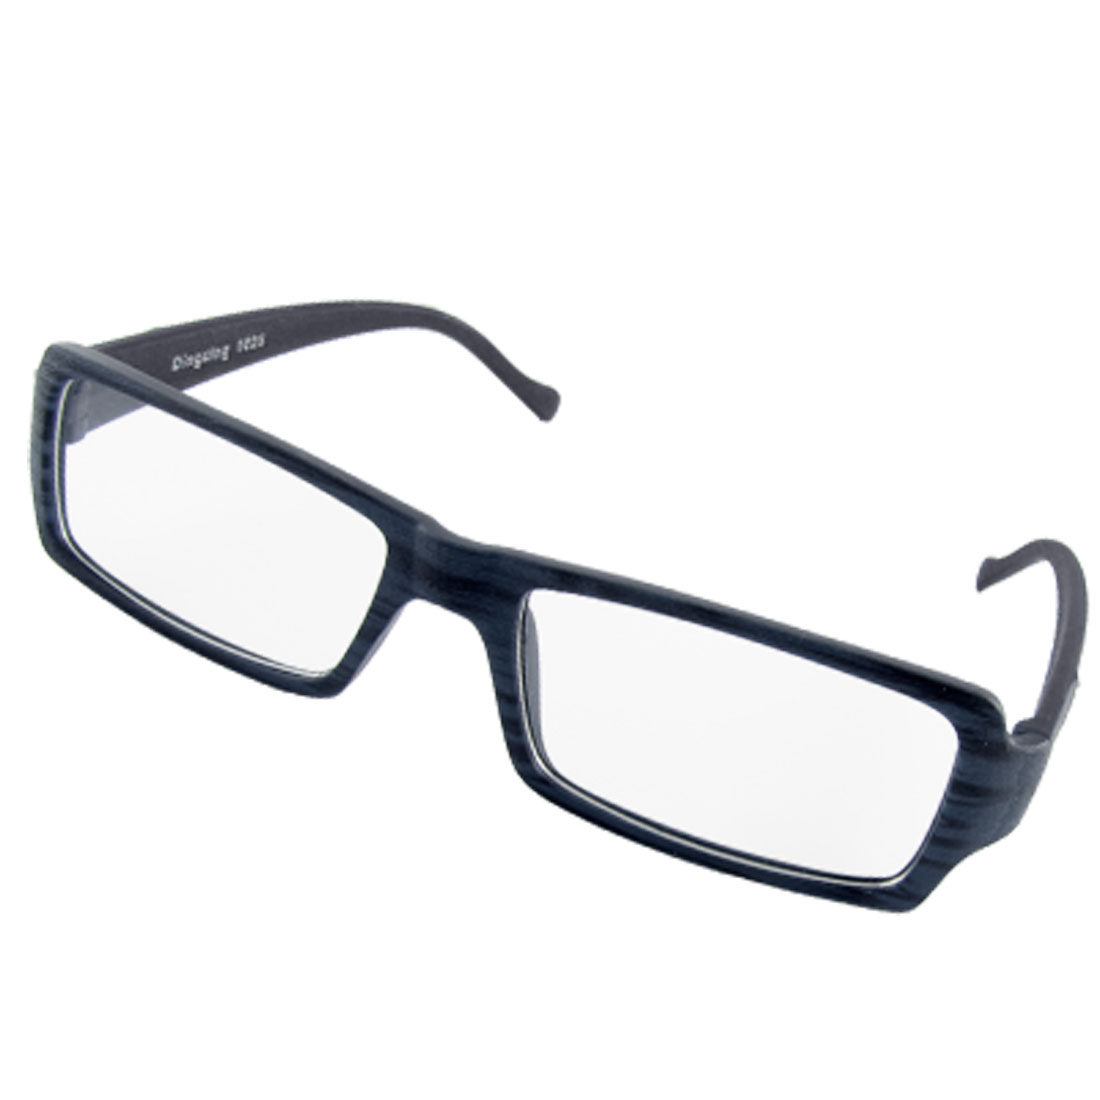 Unisex Dark Navy Blue Wood Grain Plastic Frame Plain Eyeglasses